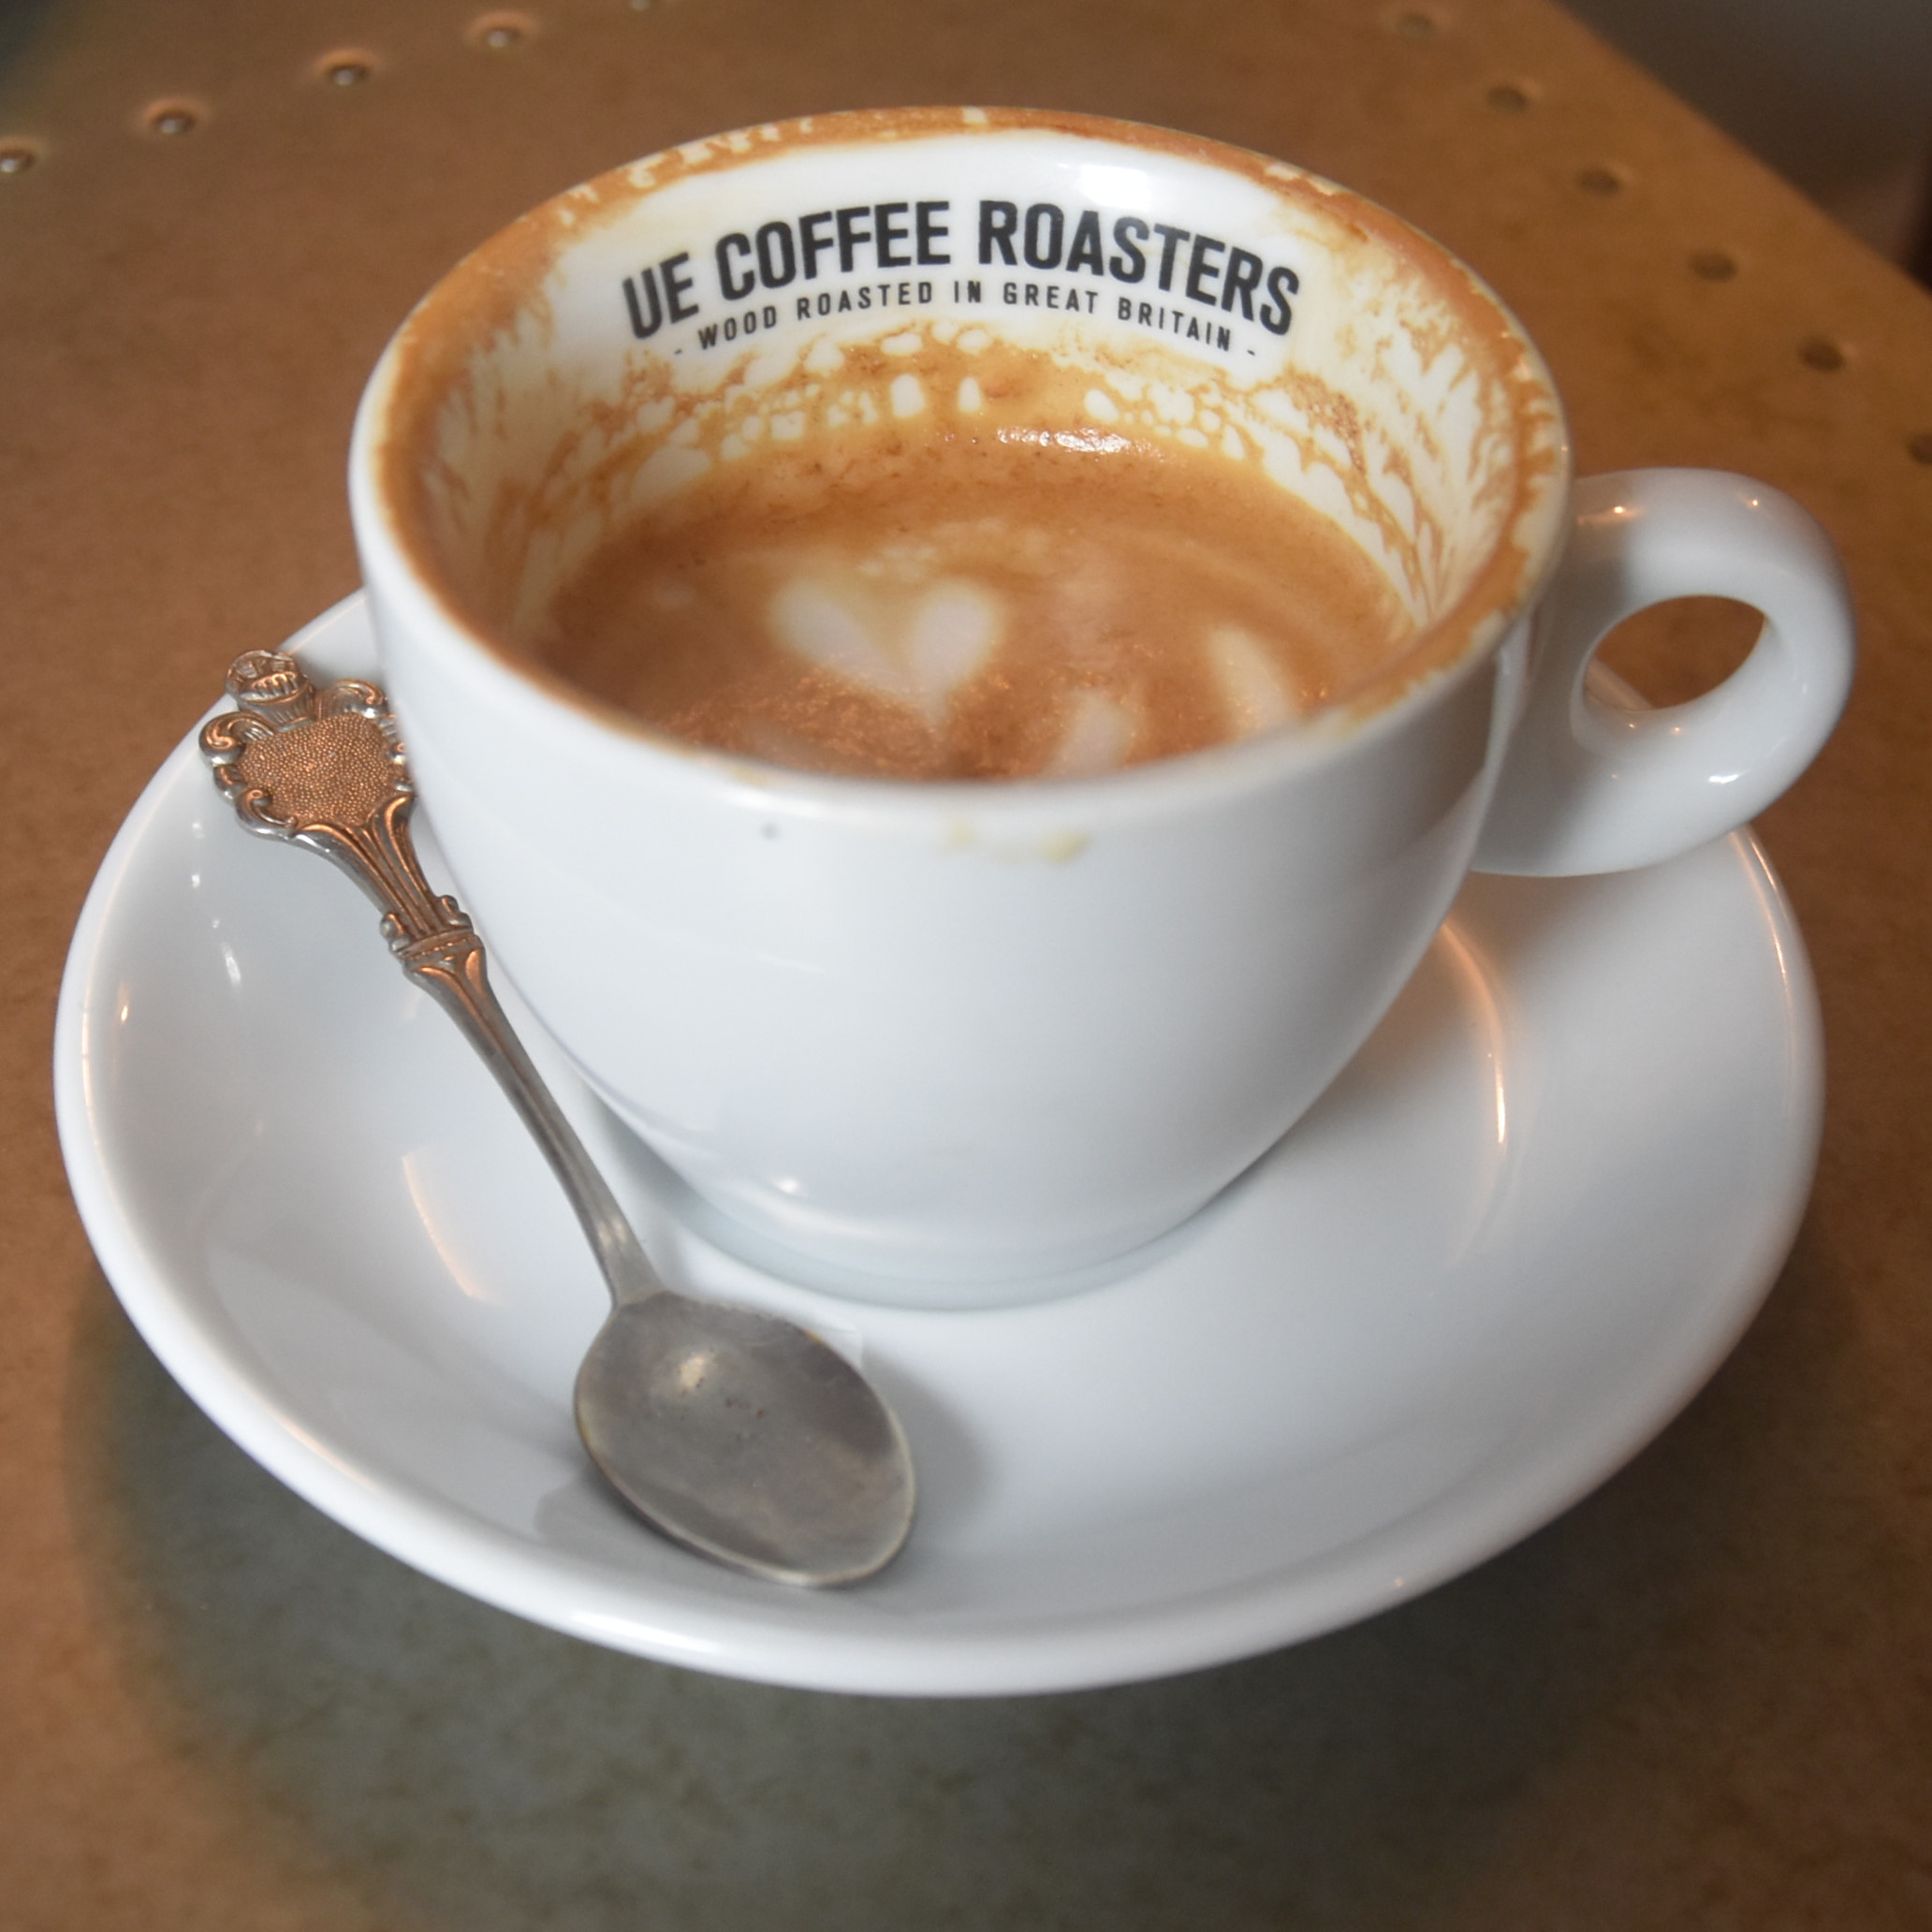 My flat white, made with the guest coffee, a washed El Salvador, and served at The Smithy, one of two Ue Coffee Roasters shops in Witney. I've drunk half of my flat white, which reveals Ue Coffee Roasters written on the inside rim of the cup.